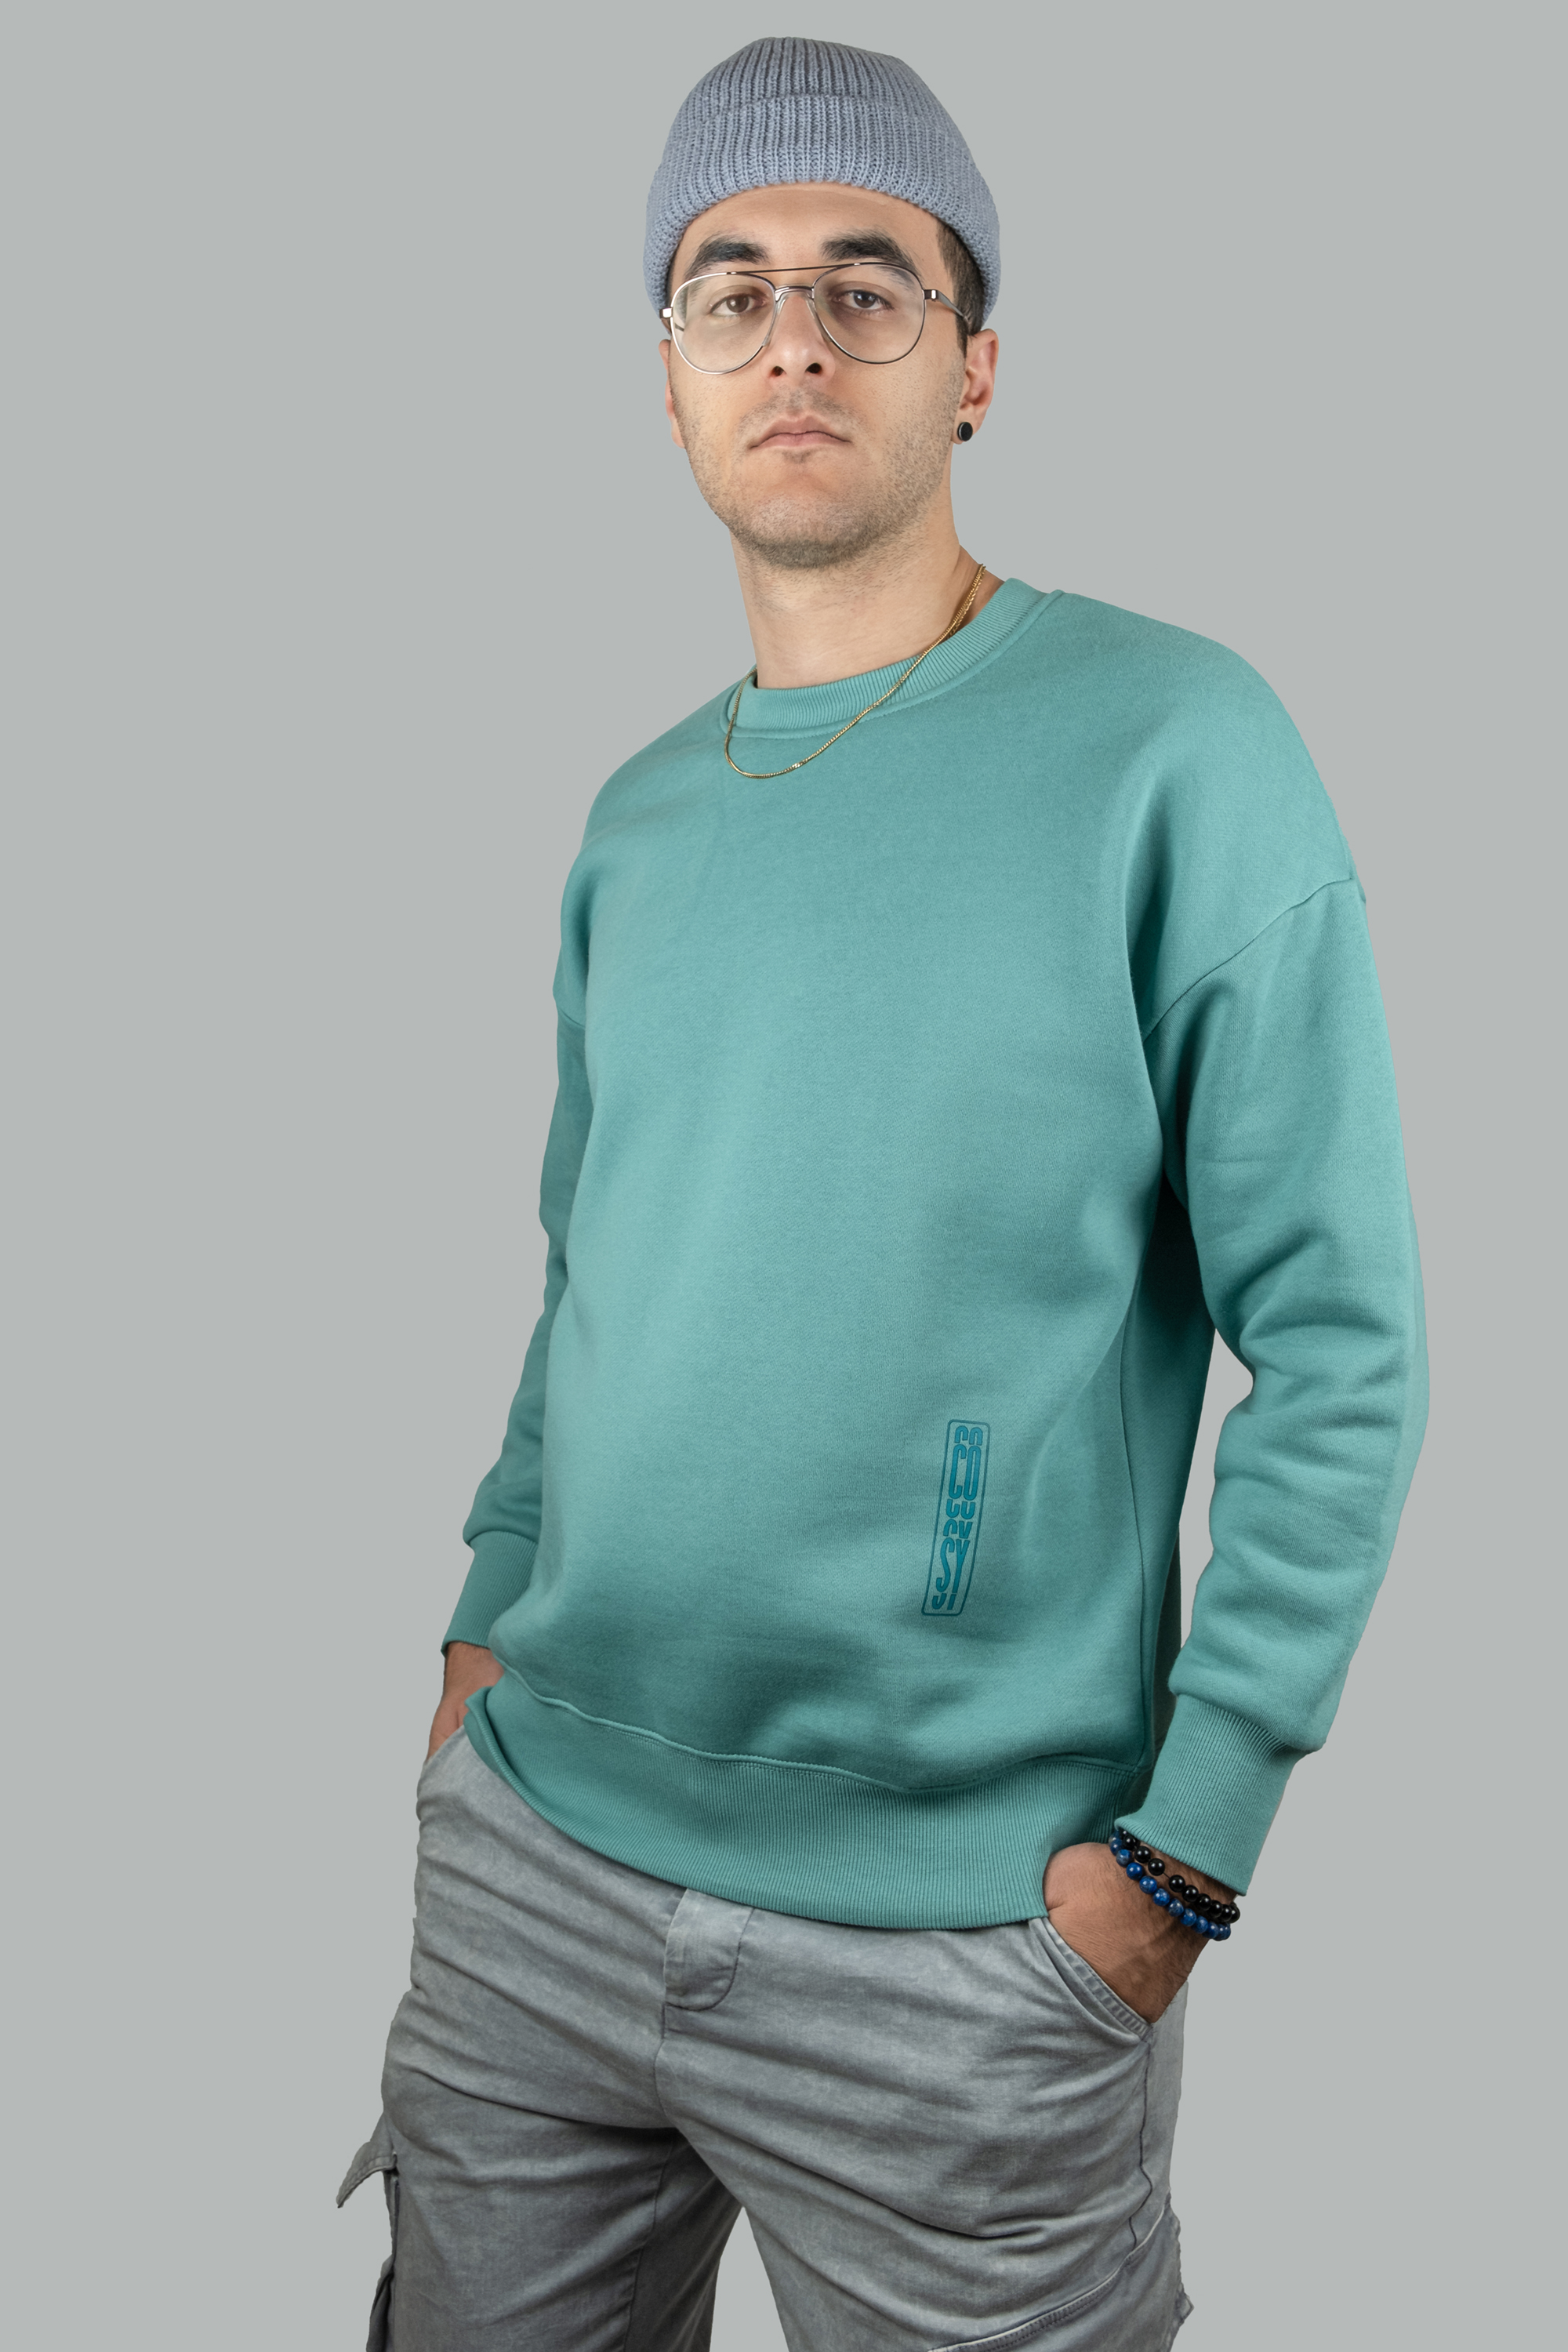 Heavyweight Crewneck Sweatshirt in Aqua Green